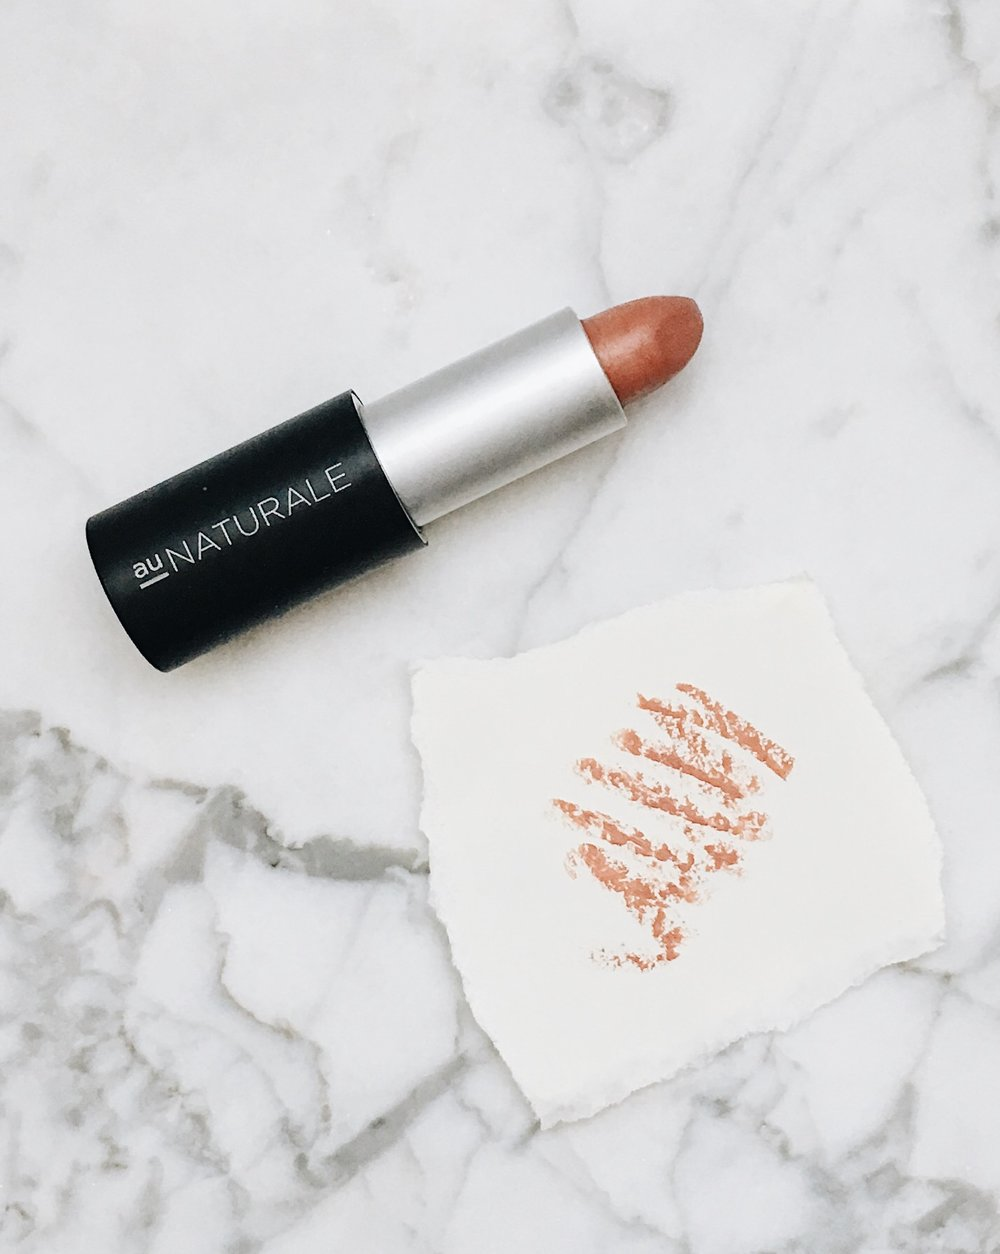 Eternity Lipstick by Au Naturale